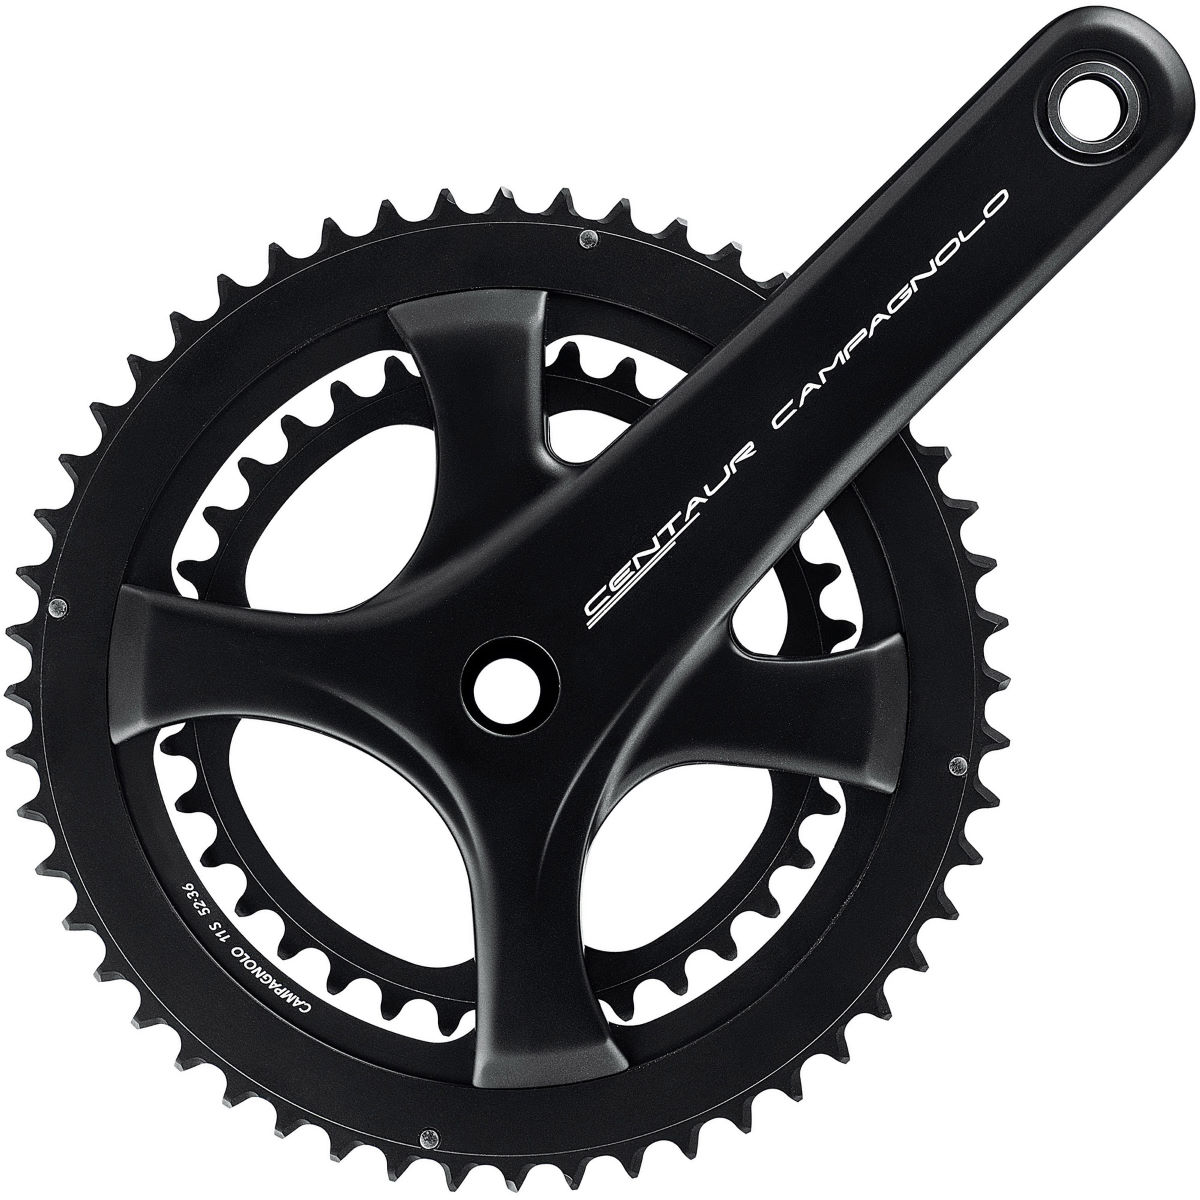 Campagnolo Campagnolo Centaur Ultra Torque 11 Speed Chainset   Chainsets